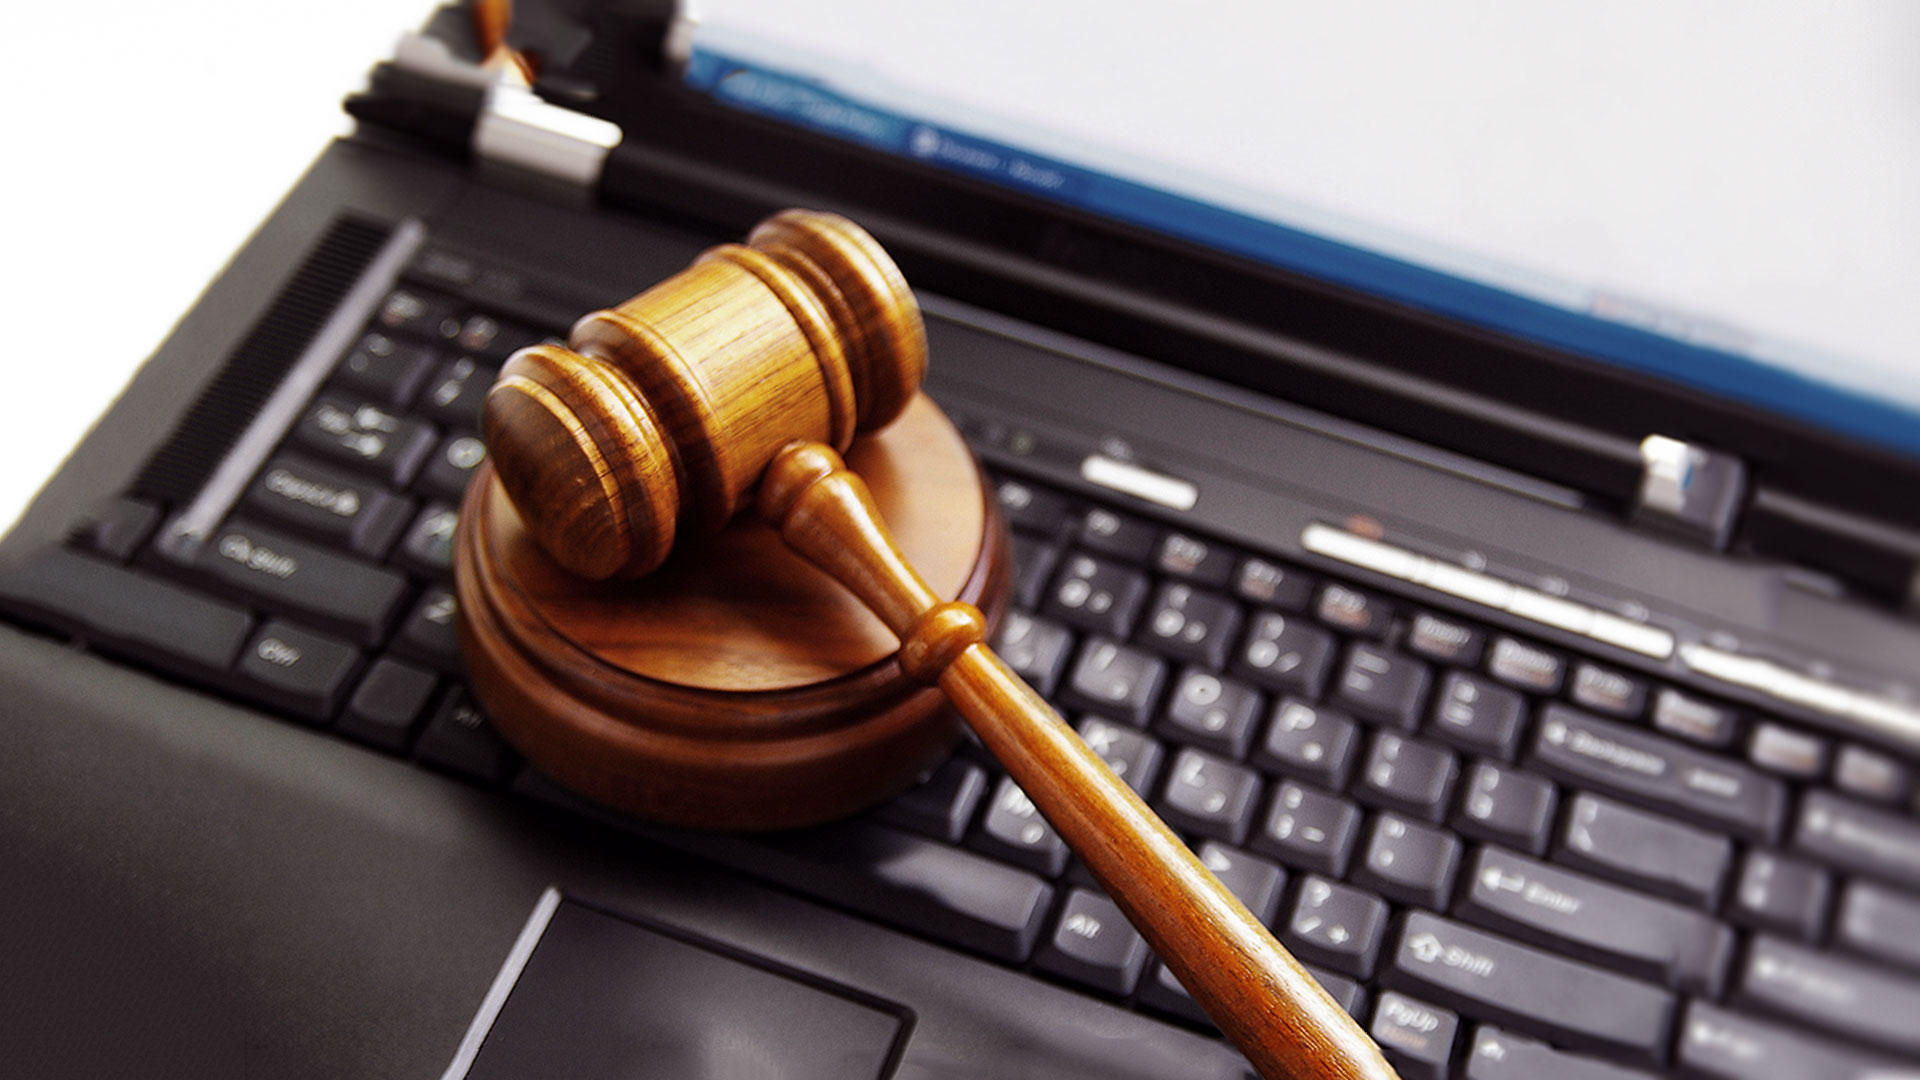 Bienenstock Nationwide Court Reporting Announces Technology Based Services